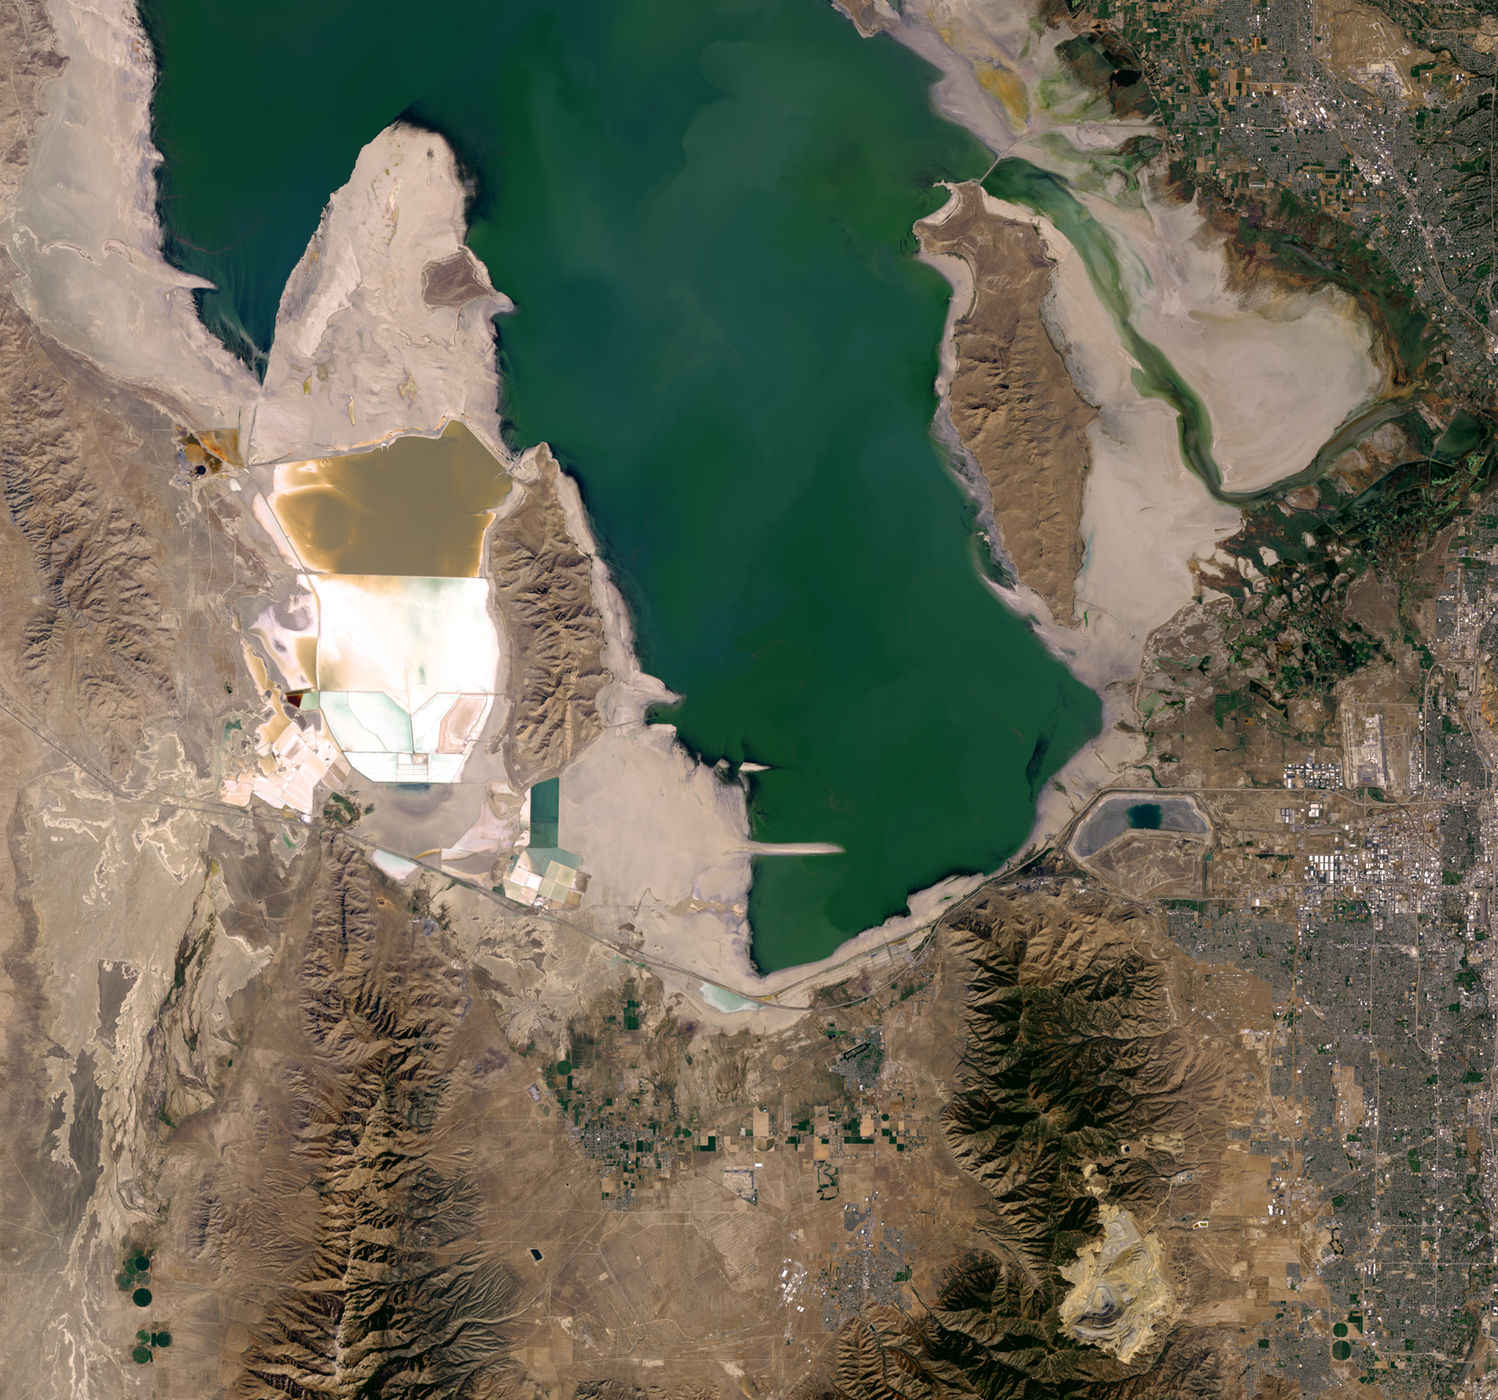 salt-lake-shrinking-nasa-virtualdr-ir